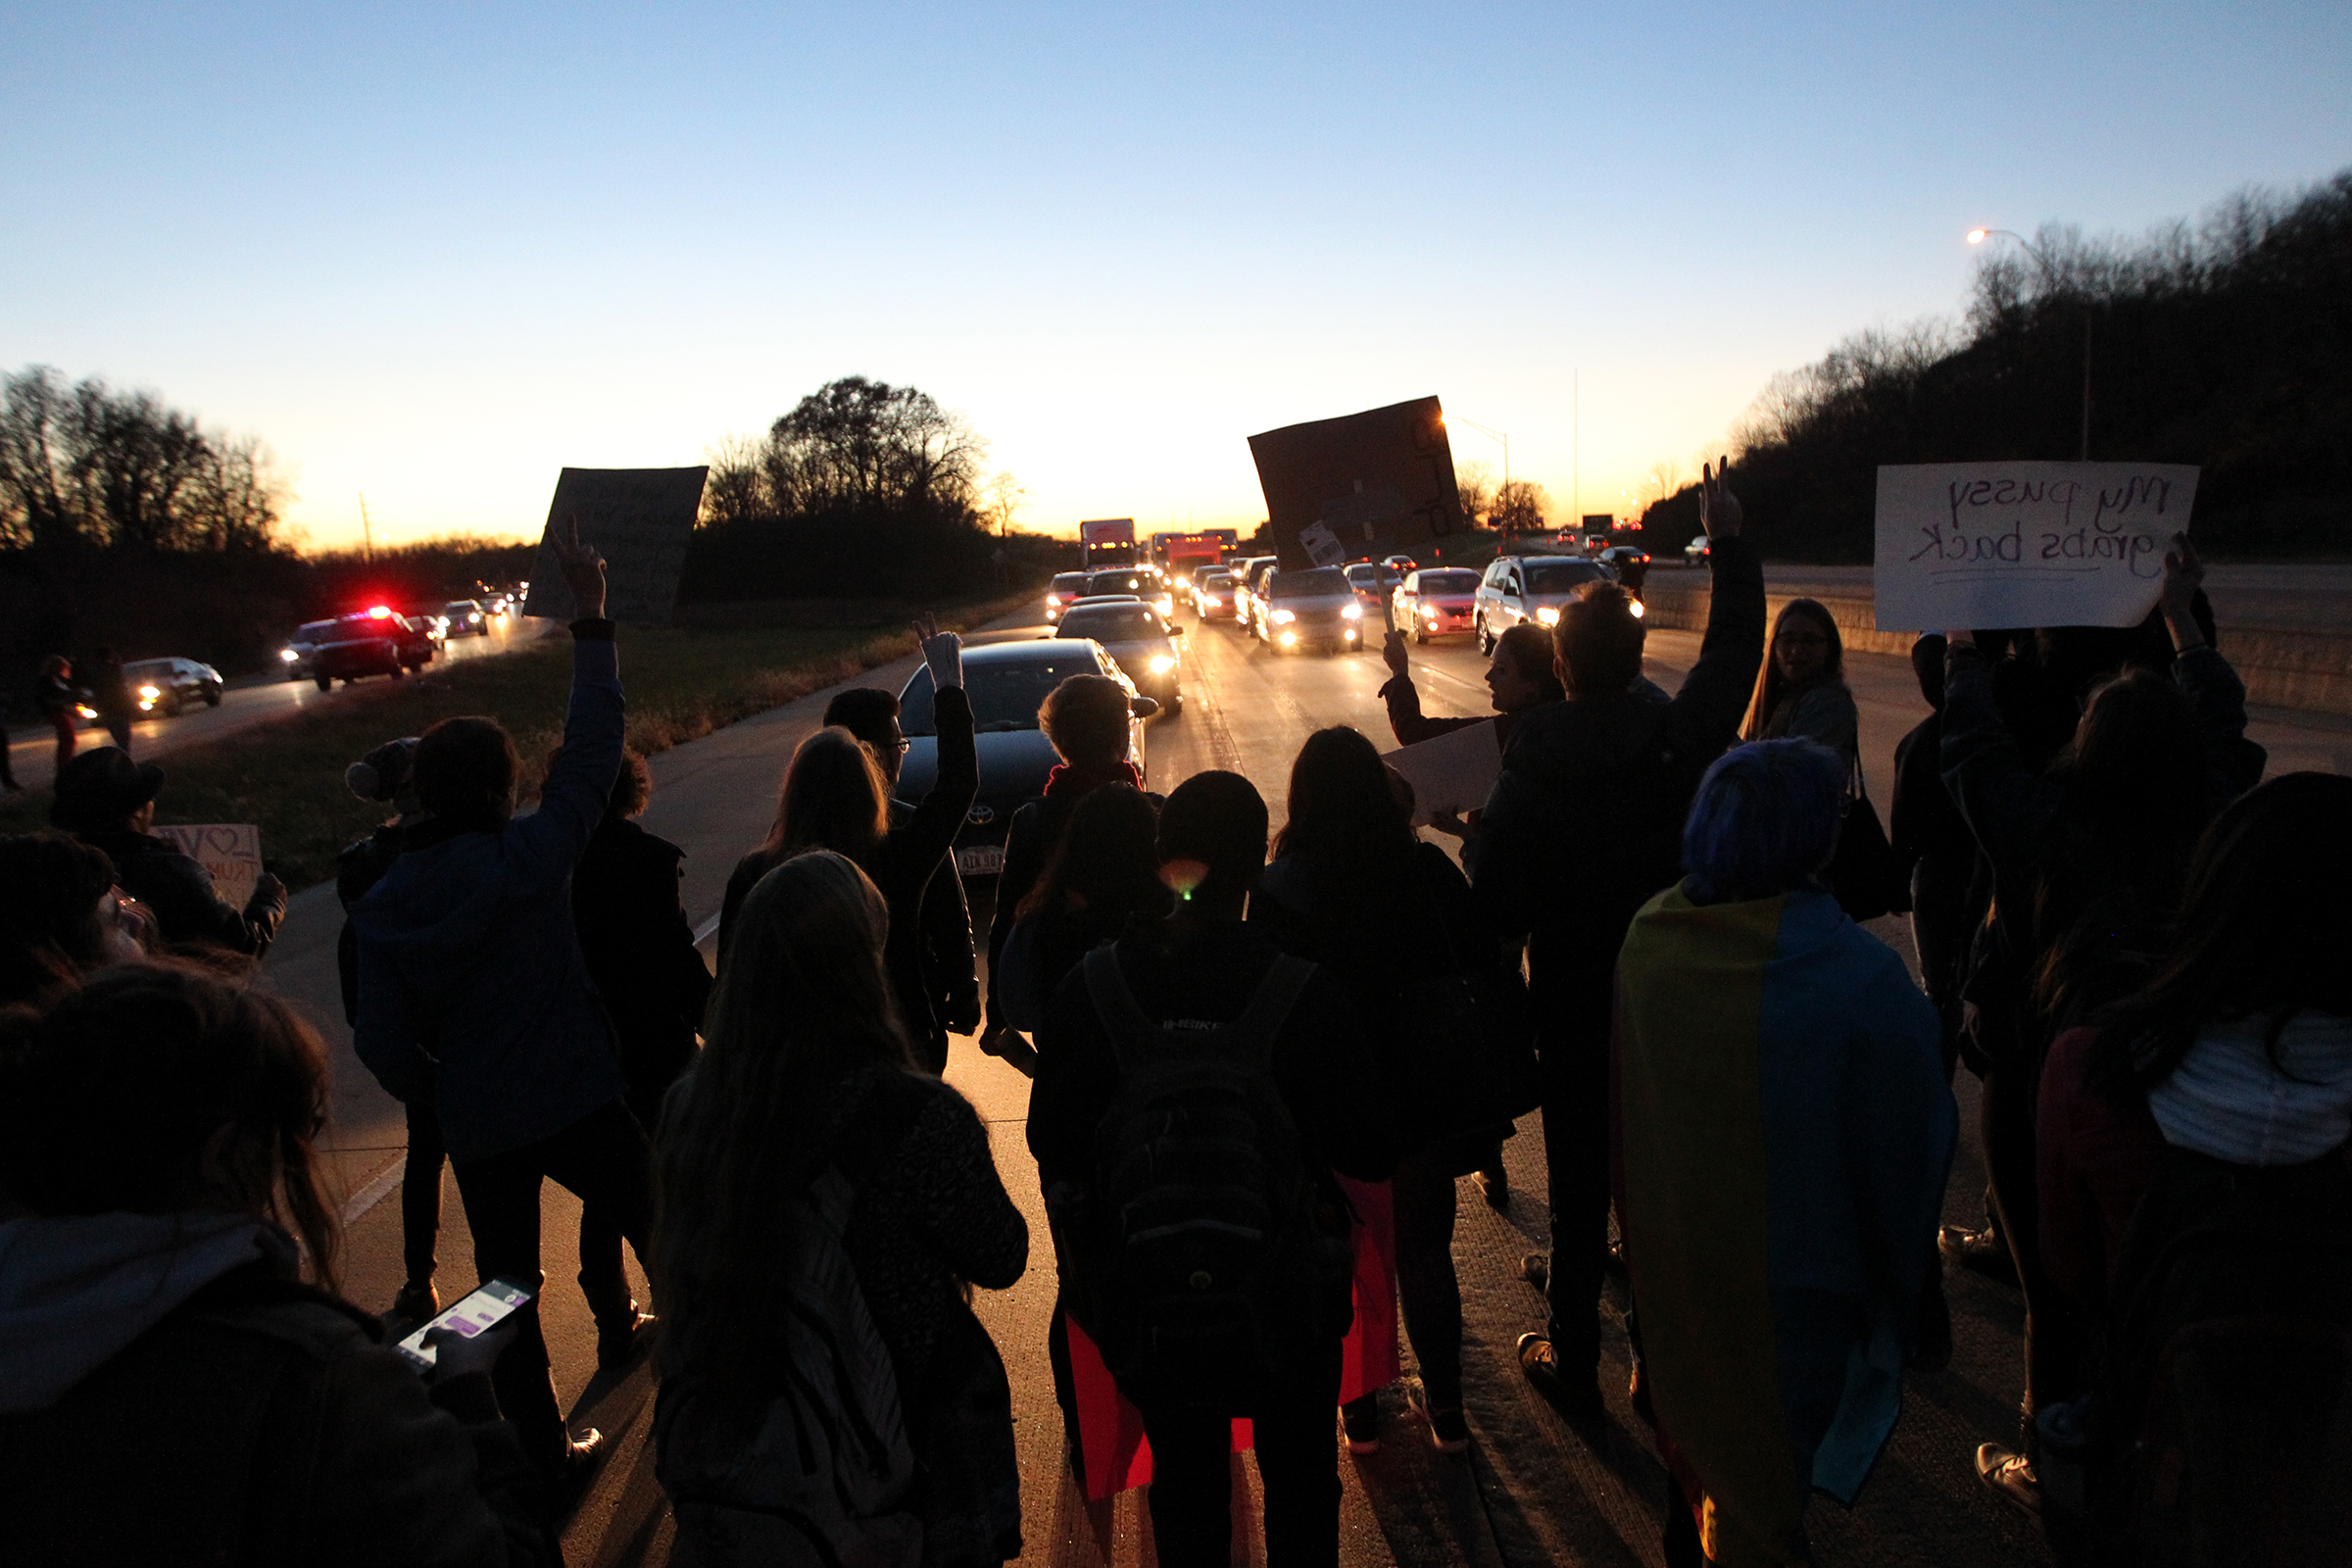 Protesters block traffic on Interstate 80 as a result of the 2016 presidential election.